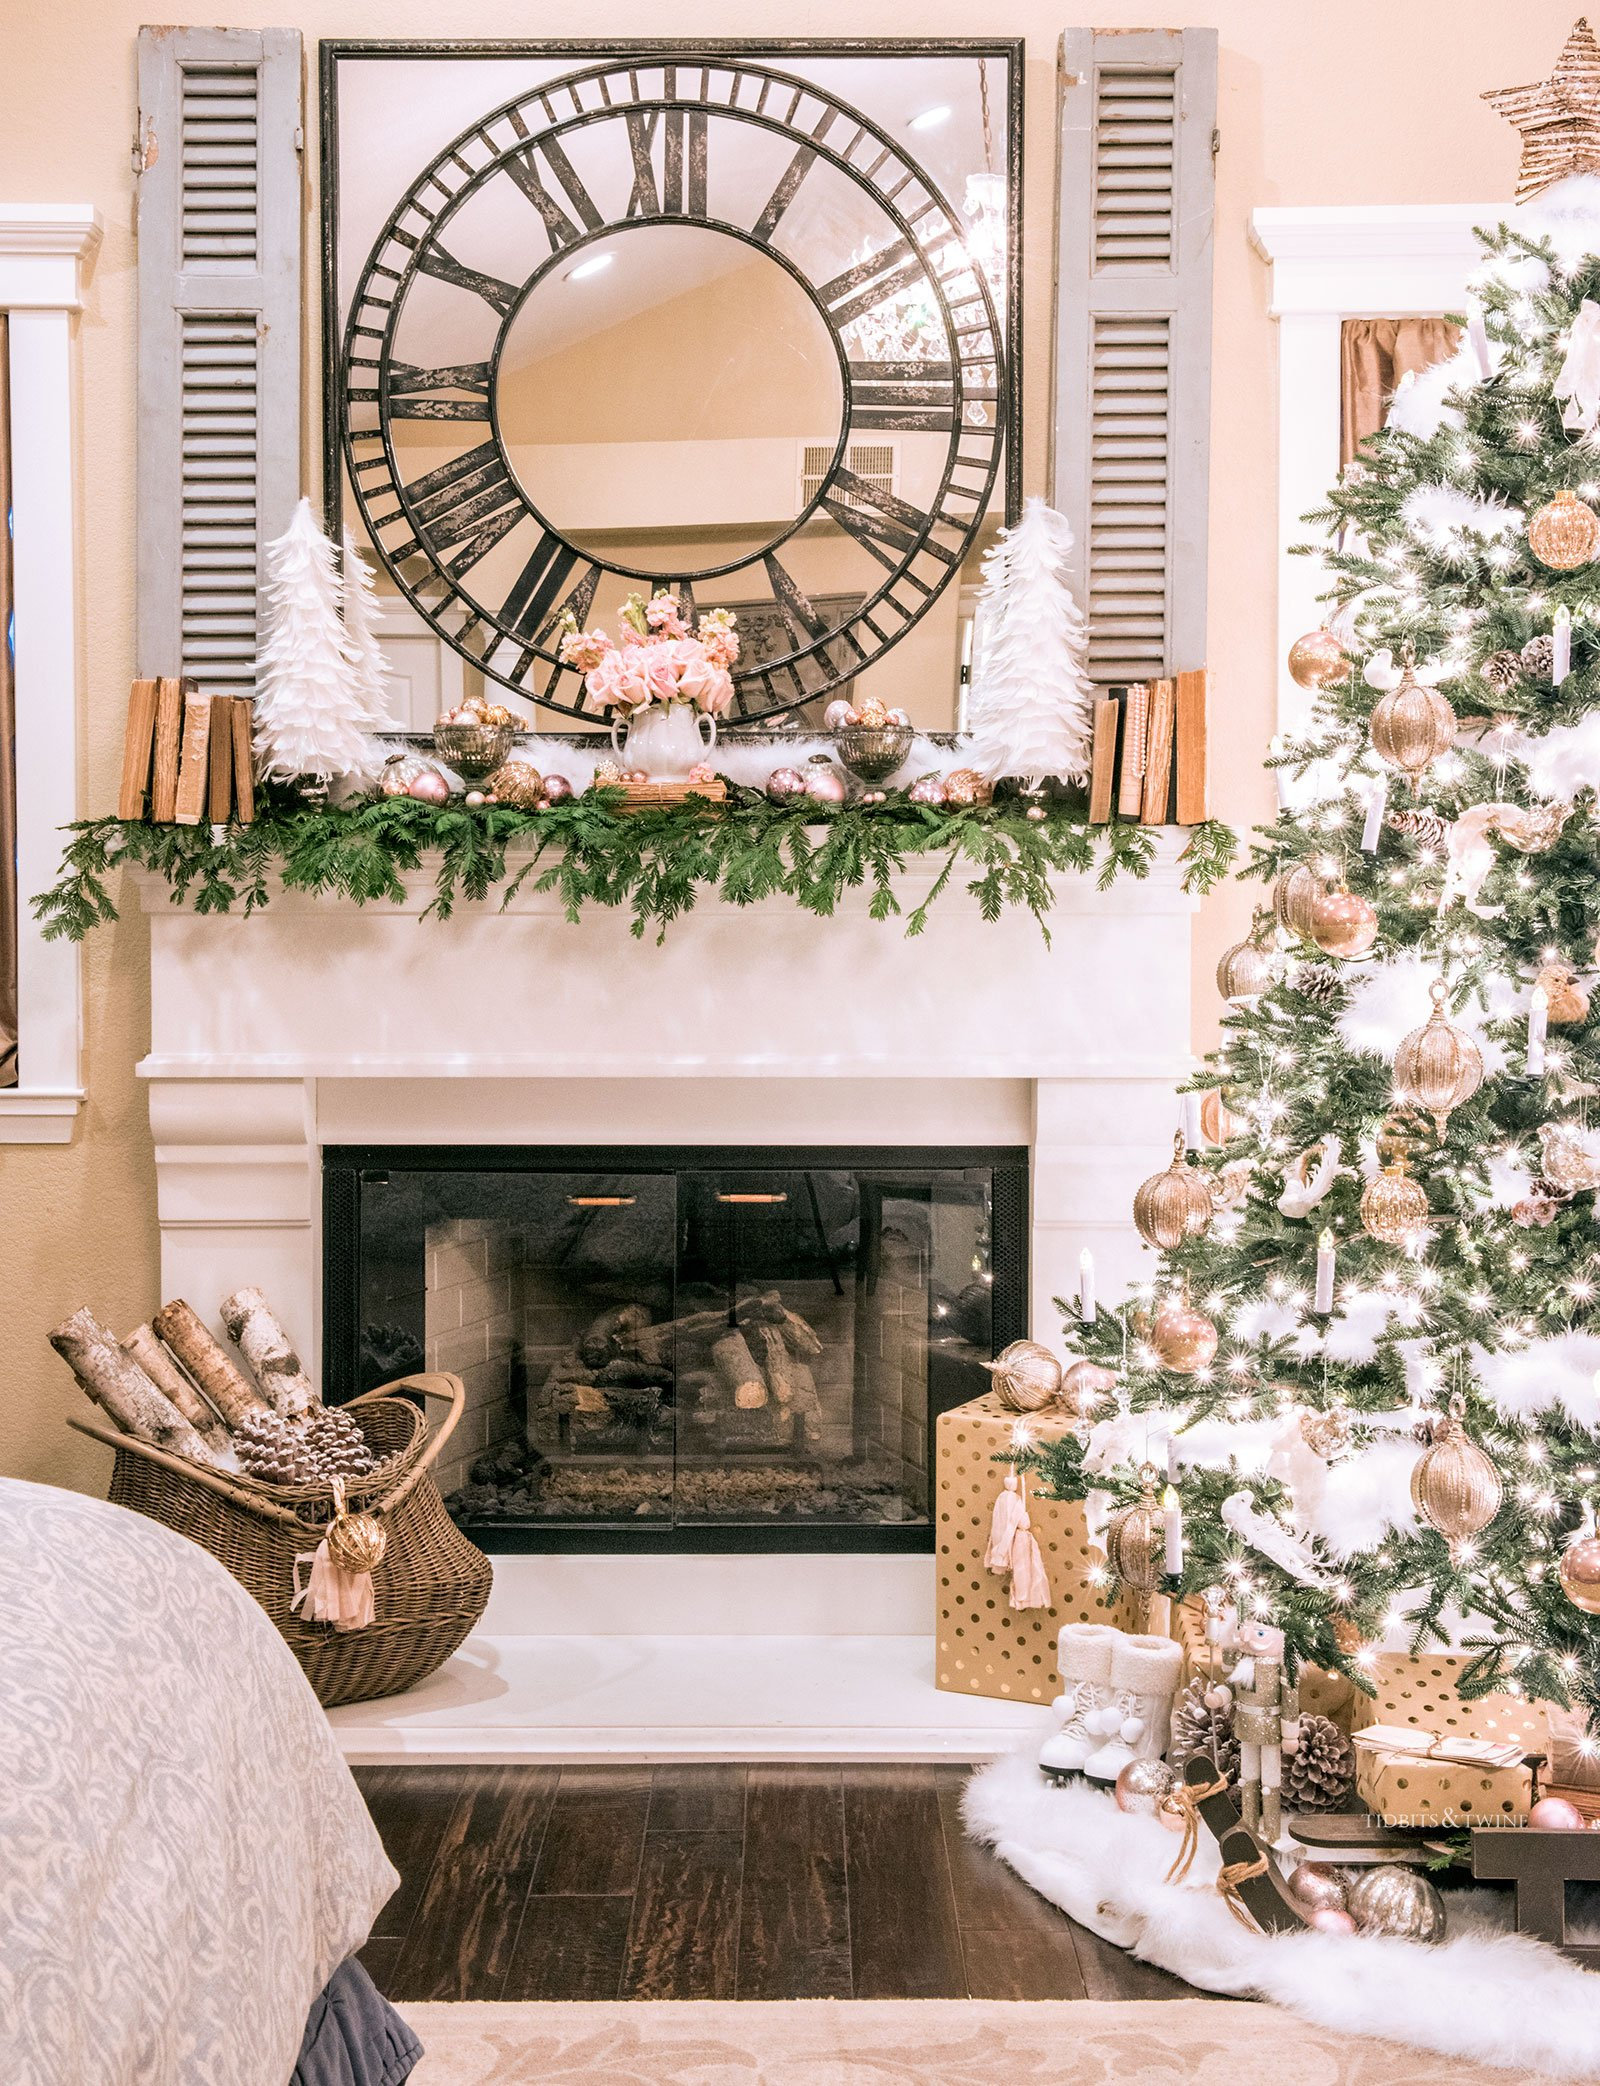 French style bedroom fireplace mantel decorated for Christmas